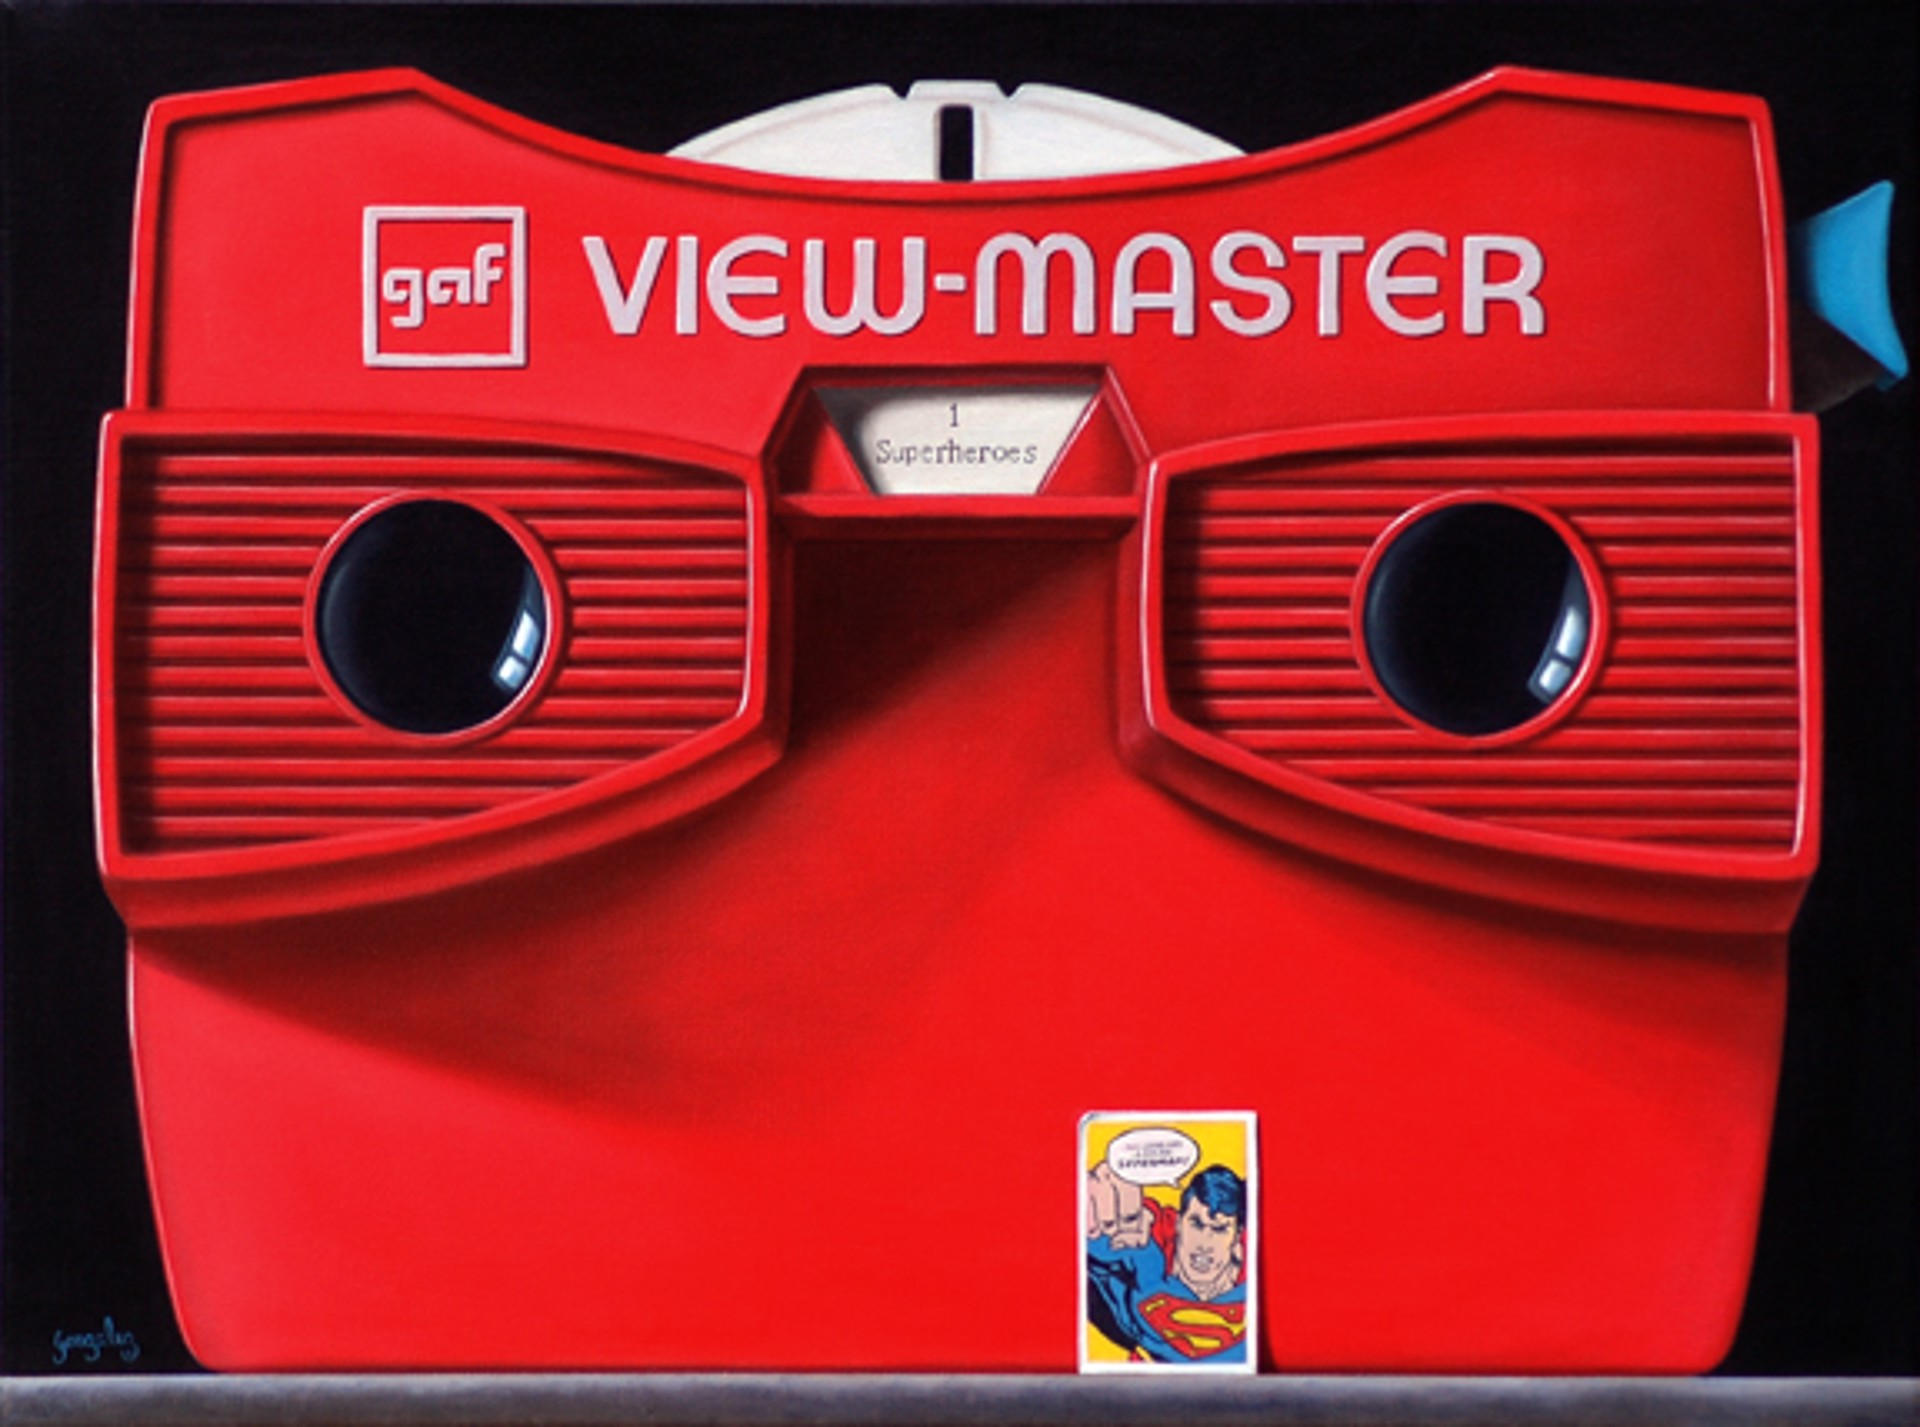 View Master by George Gonzalez